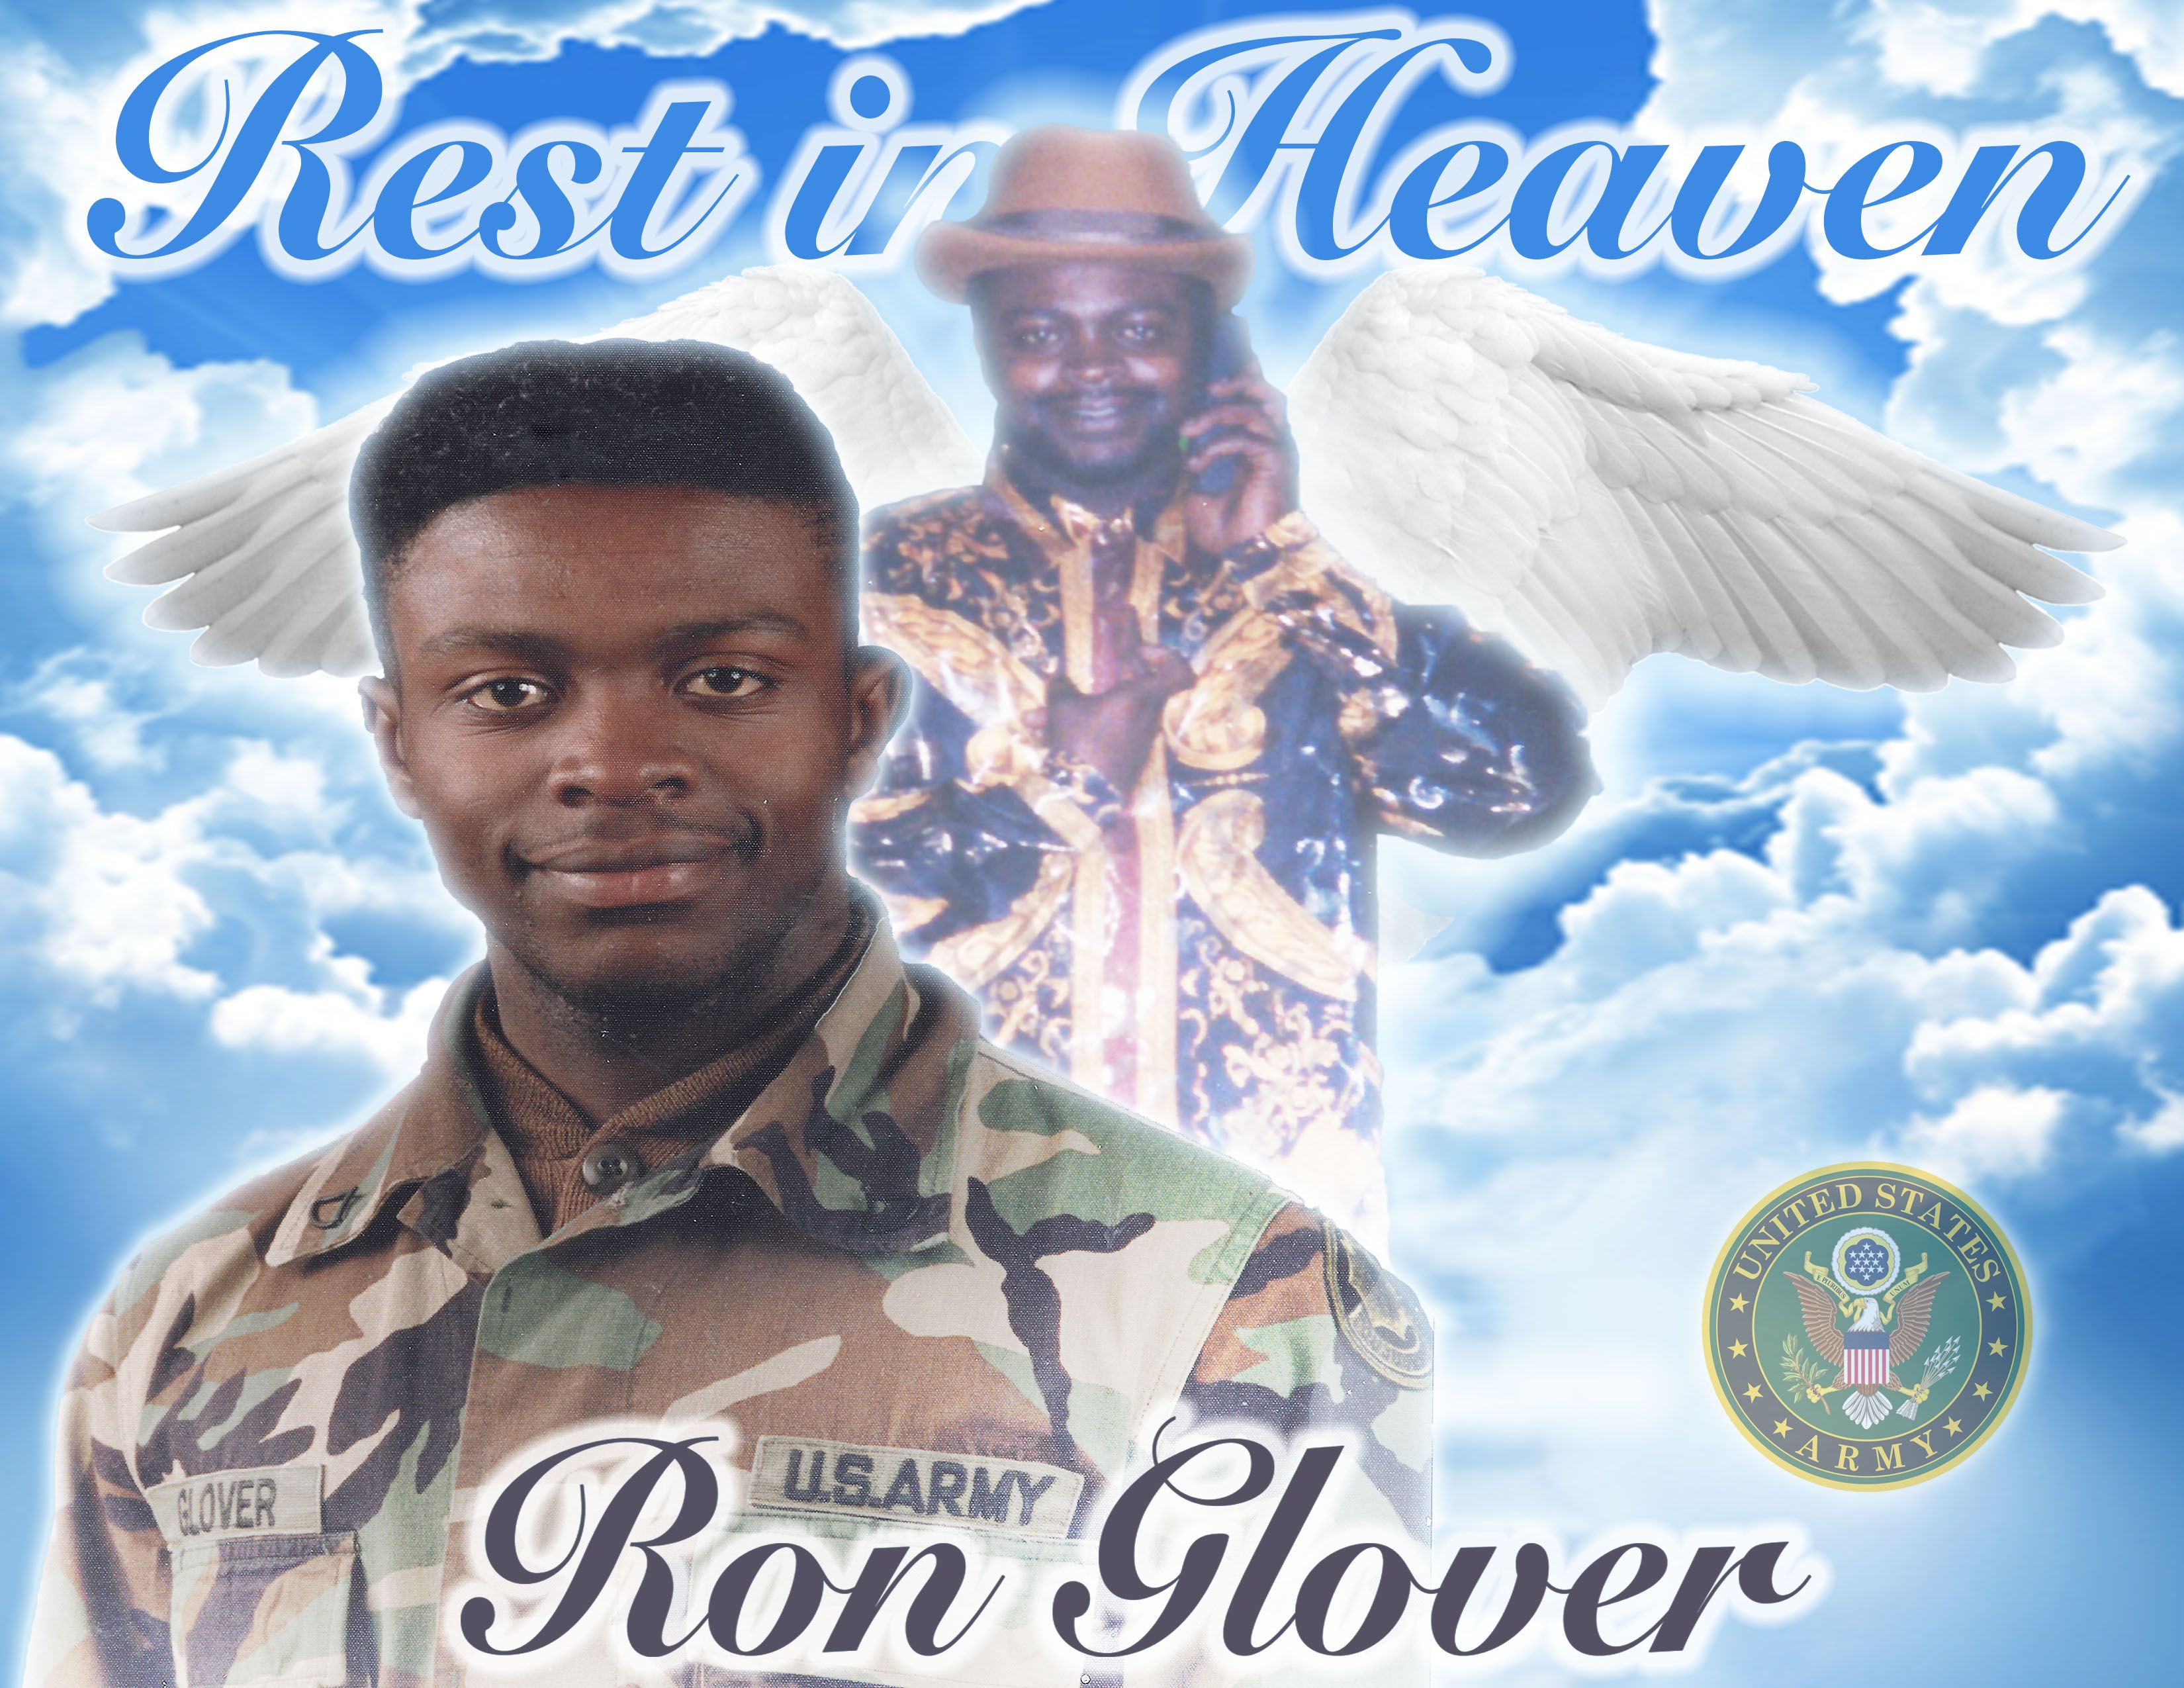 Rest in heaven ron glover photo shirt rest in peace photo for t rest in heaven ron glover photo shirt jeuxipadfo Gallery